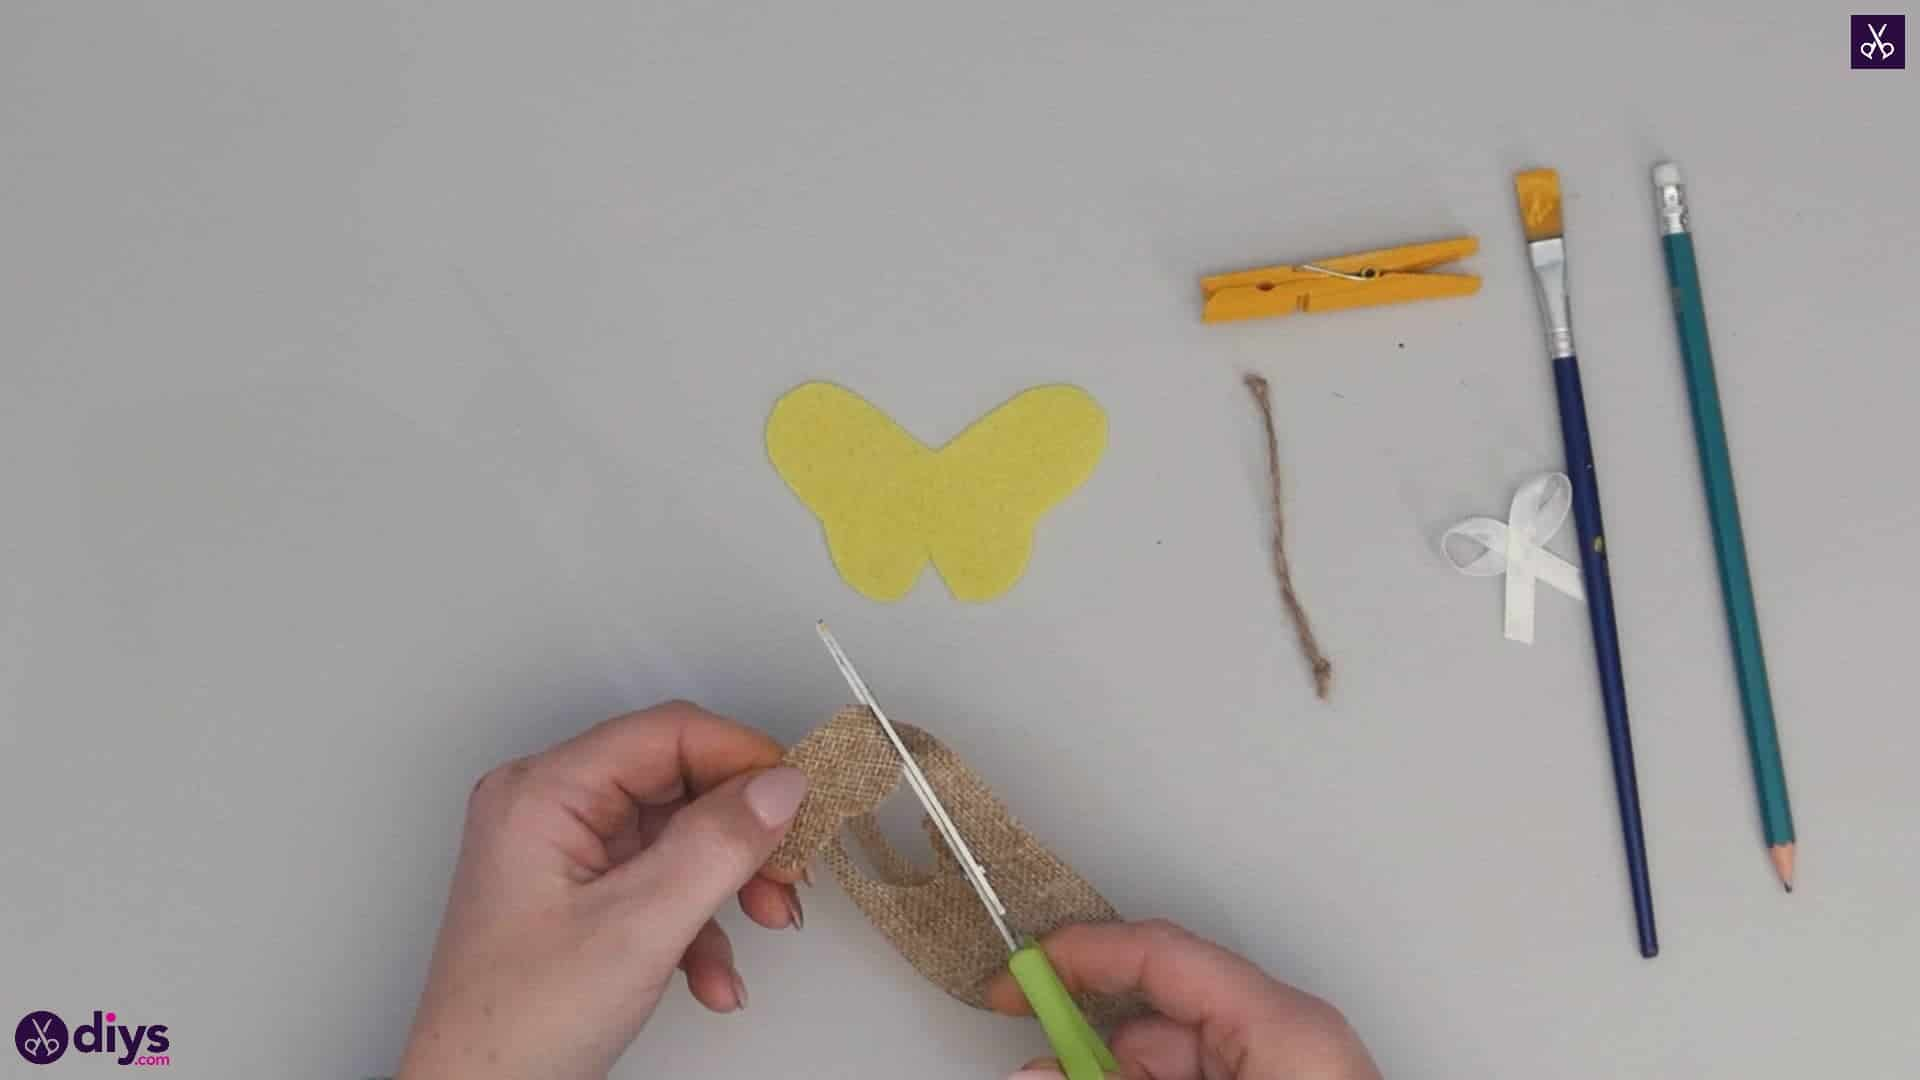 How to craft a butterfly from a clothespin step 6b